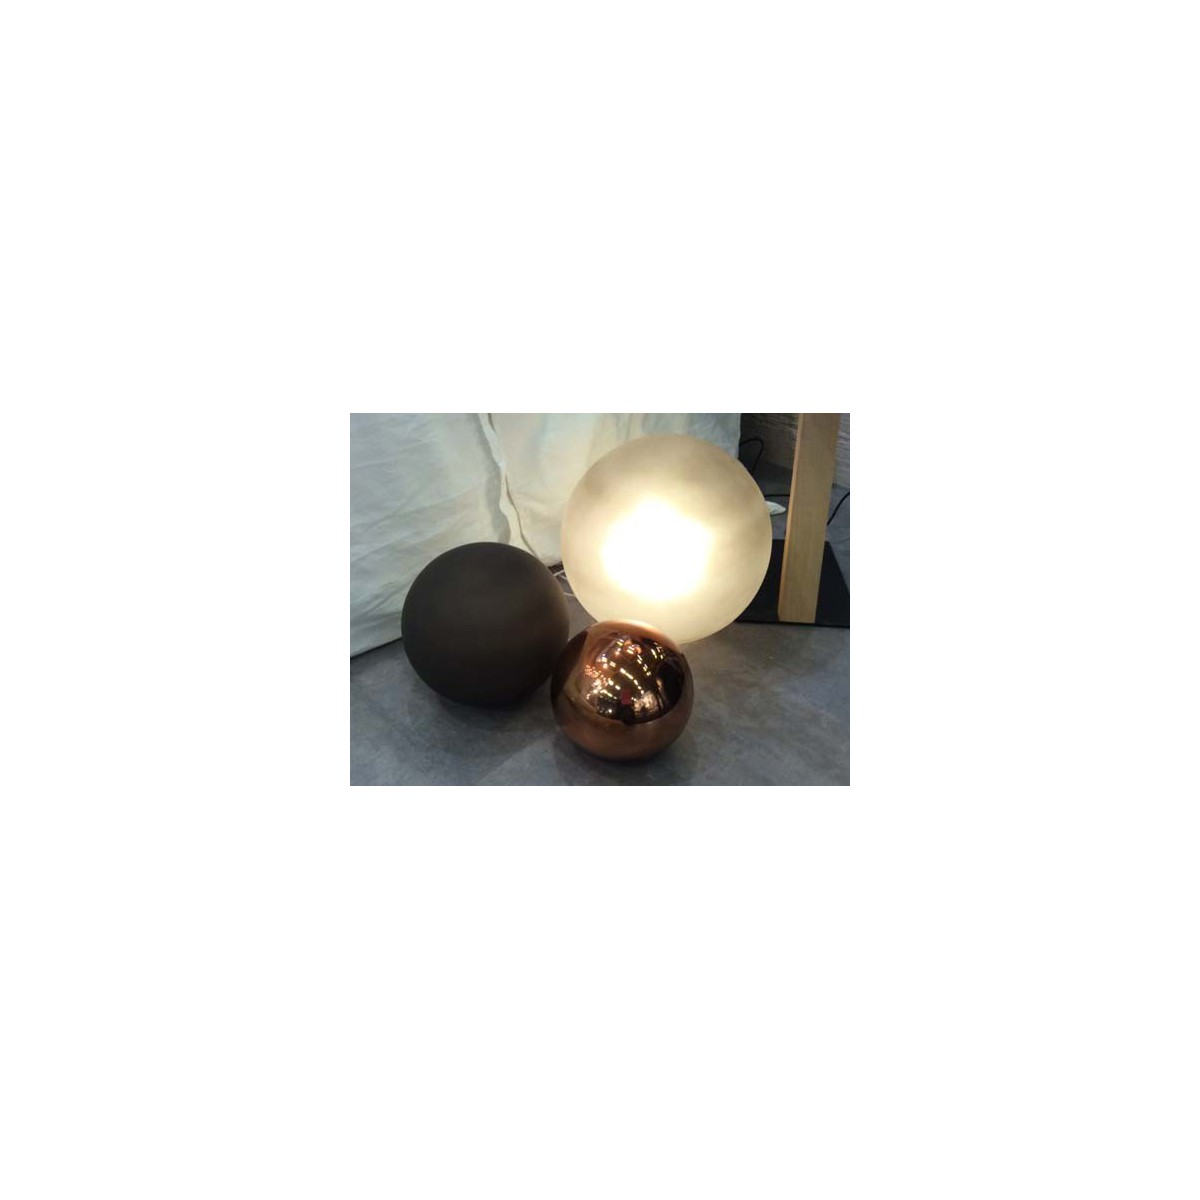 lampe d 39 ambiance boule en verre souffl par angel des montagnes. Black Bedroom Furniture Sets. Home Design Ideas